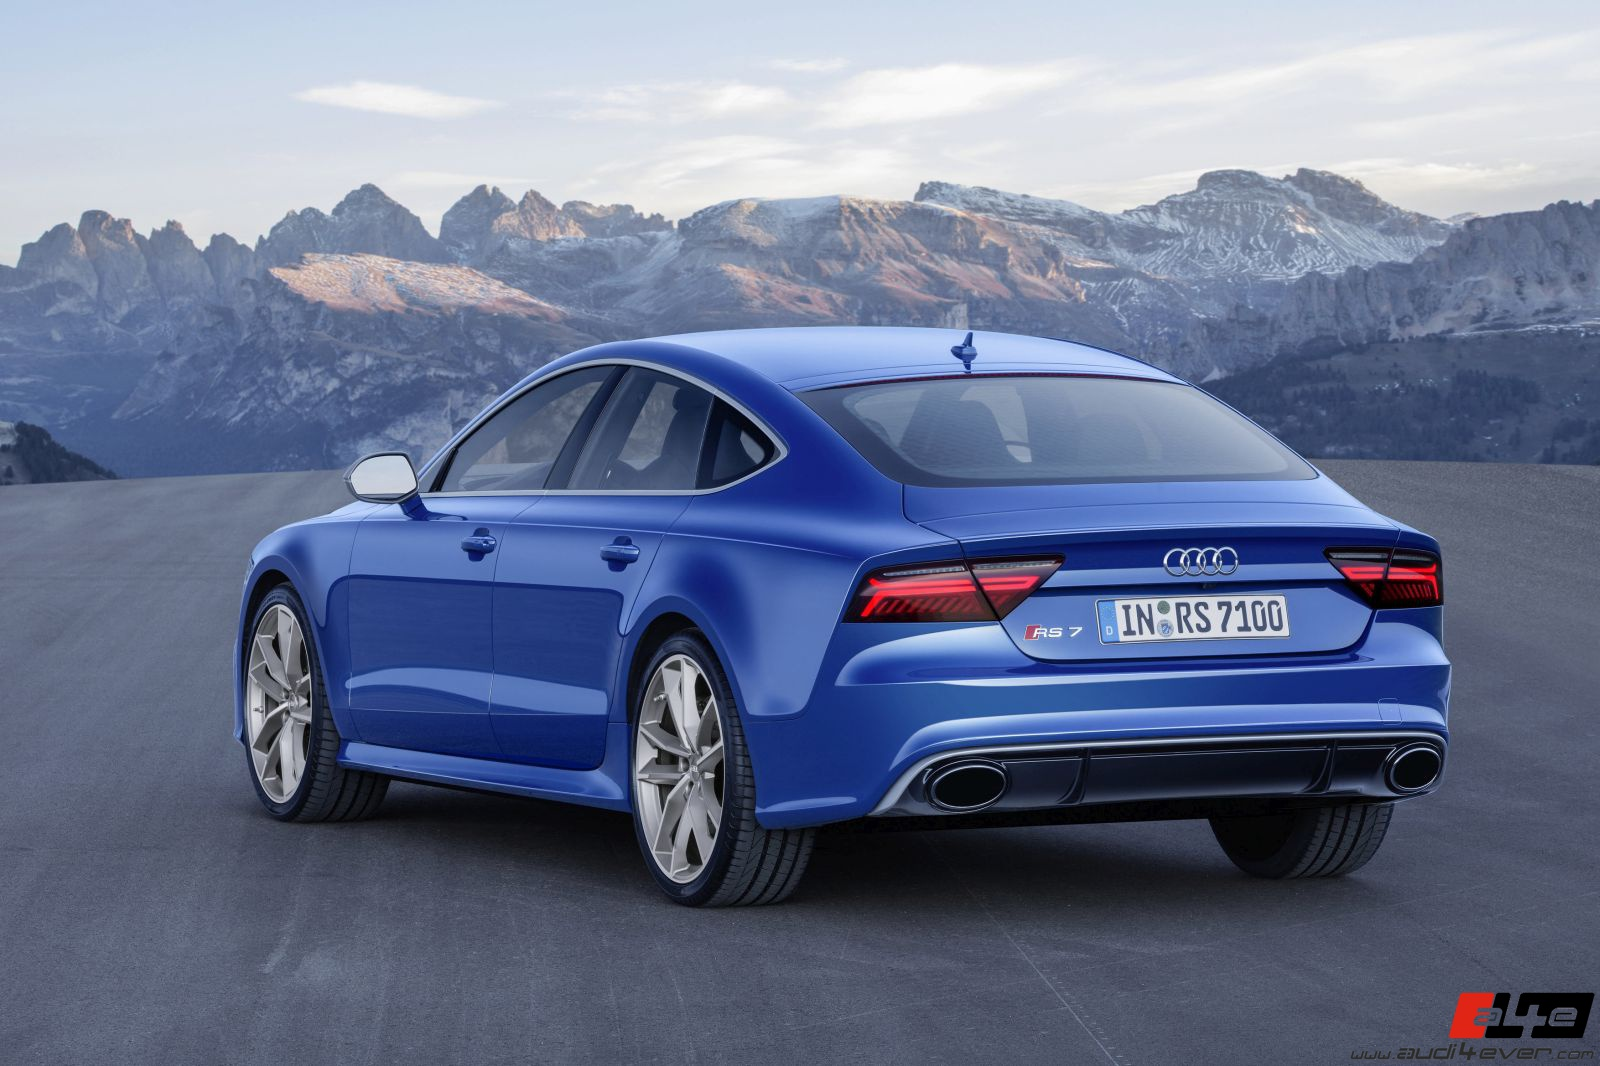 a4e gallery audi a7 sportback audi rs7 sportback performance. Black Bedroom Furniture Sets. Home Design Ideas